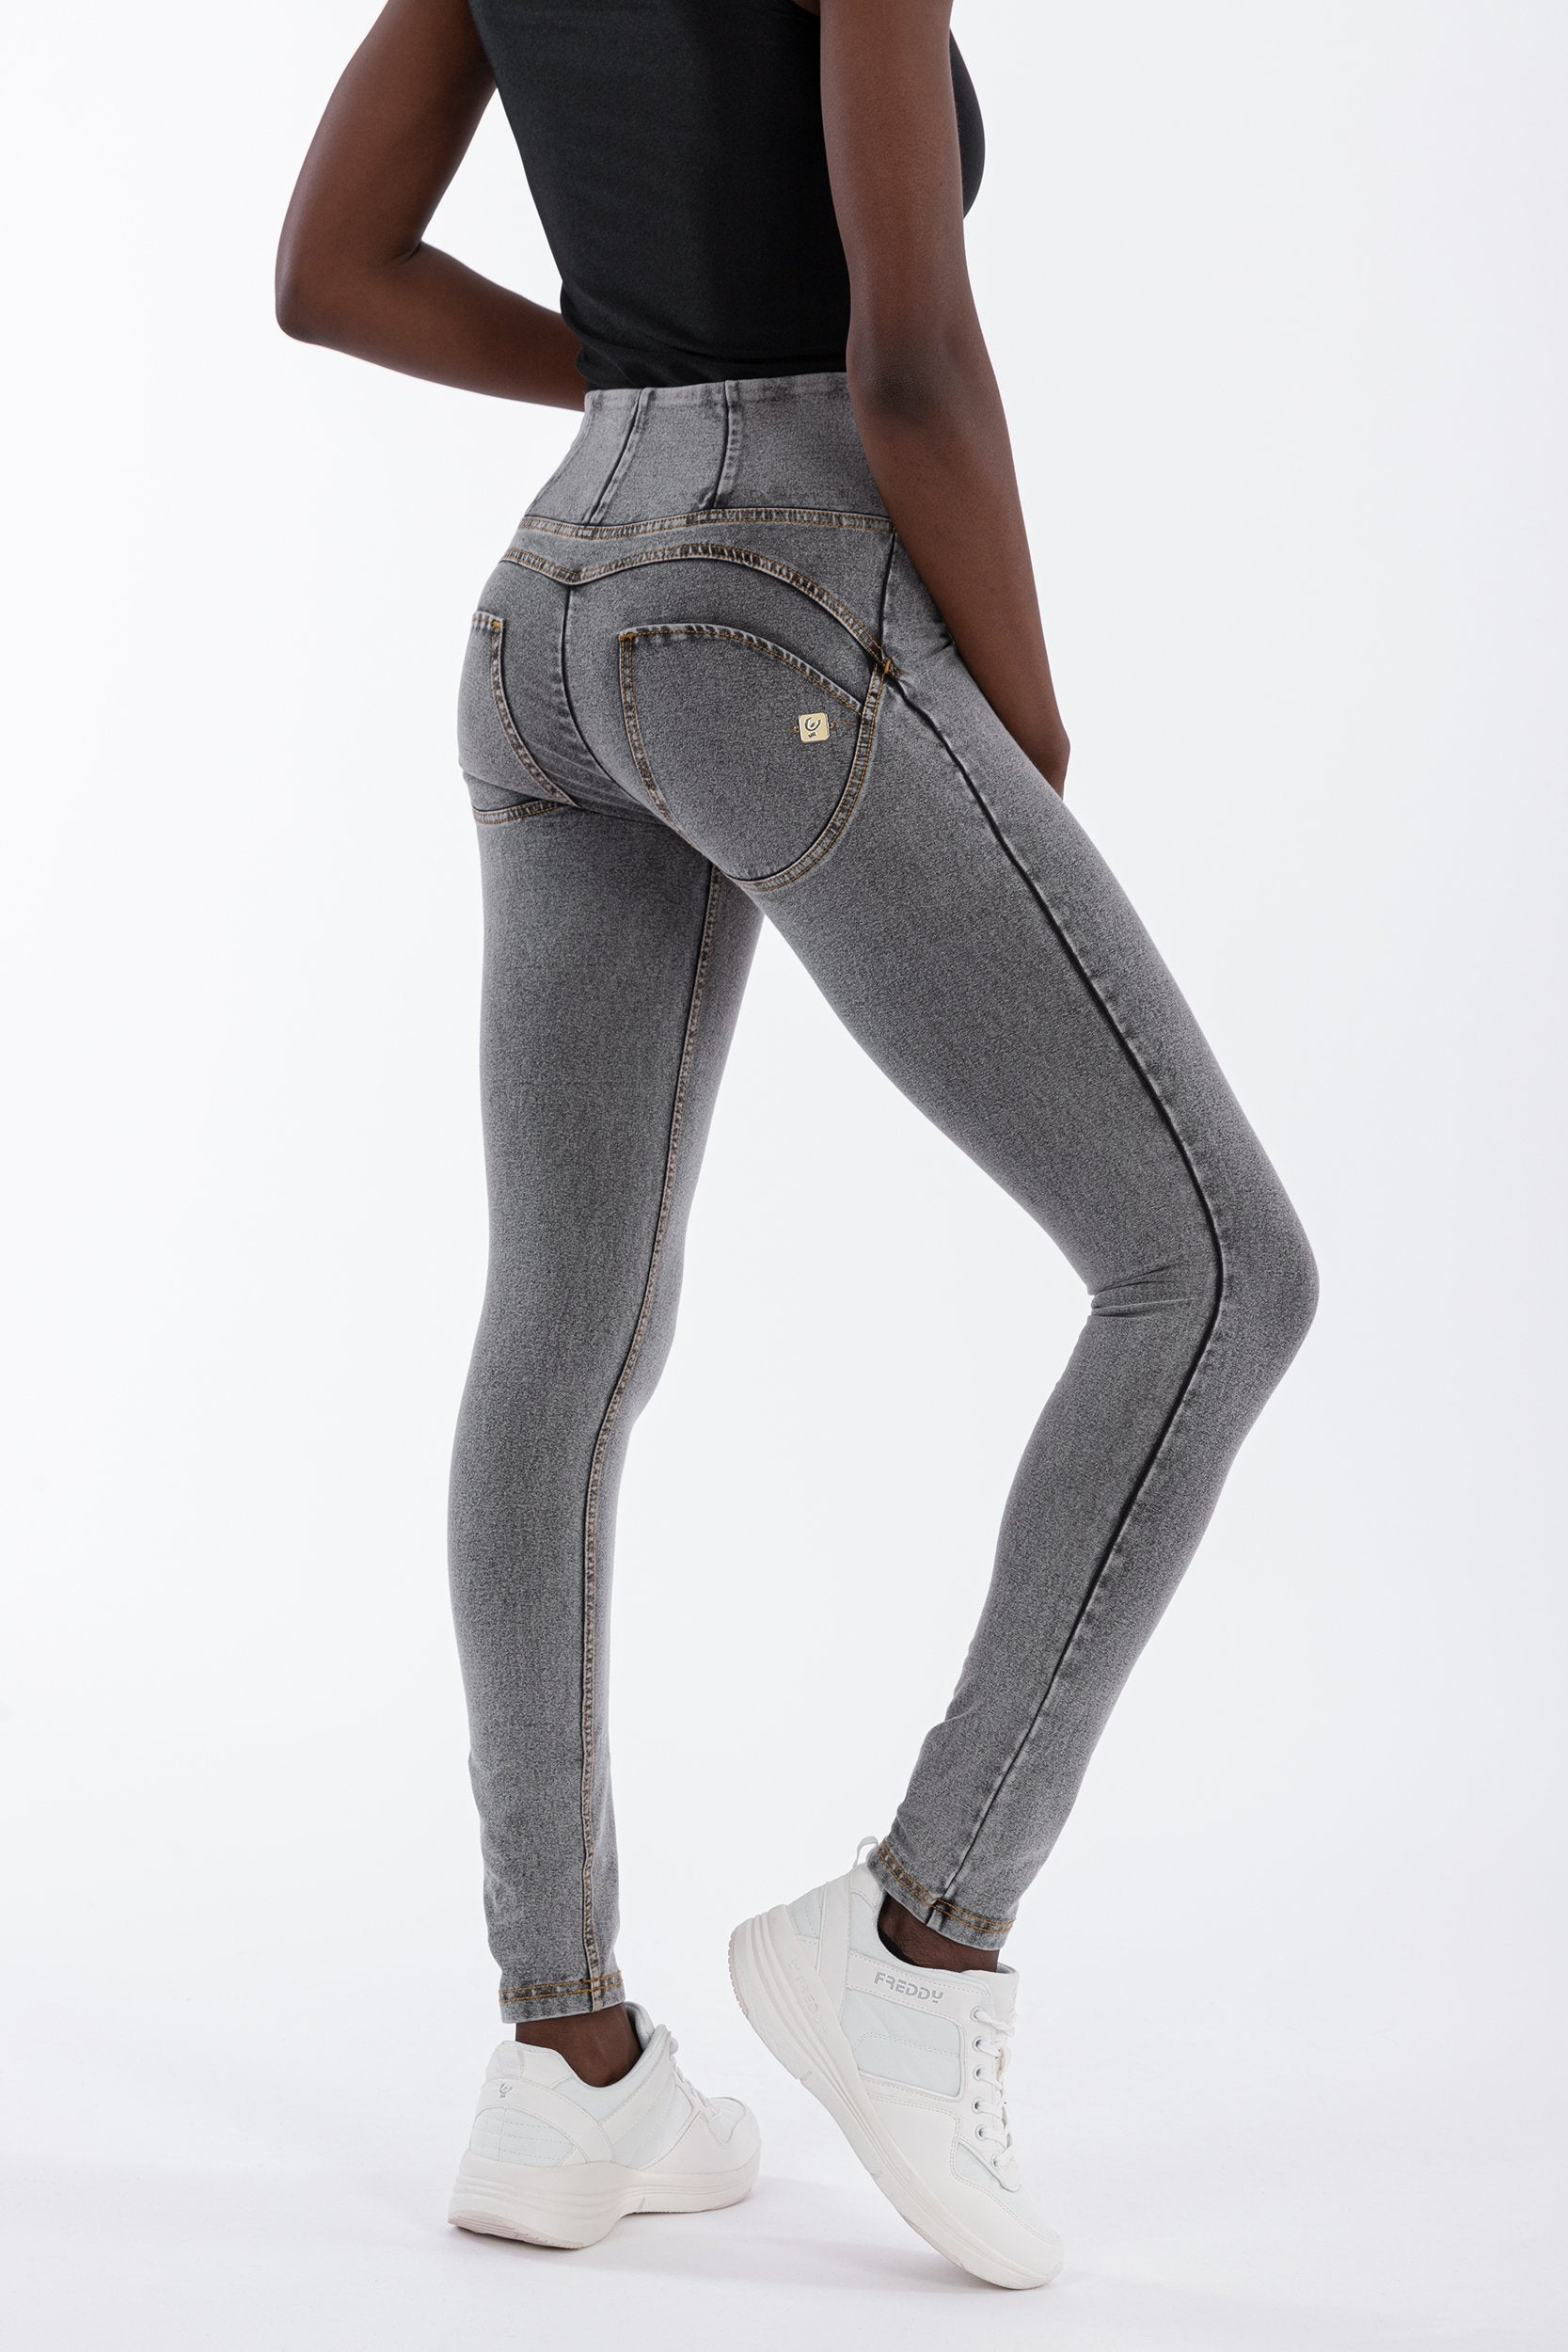 GREY DENIM 3 BUTTONS HIGH RISE